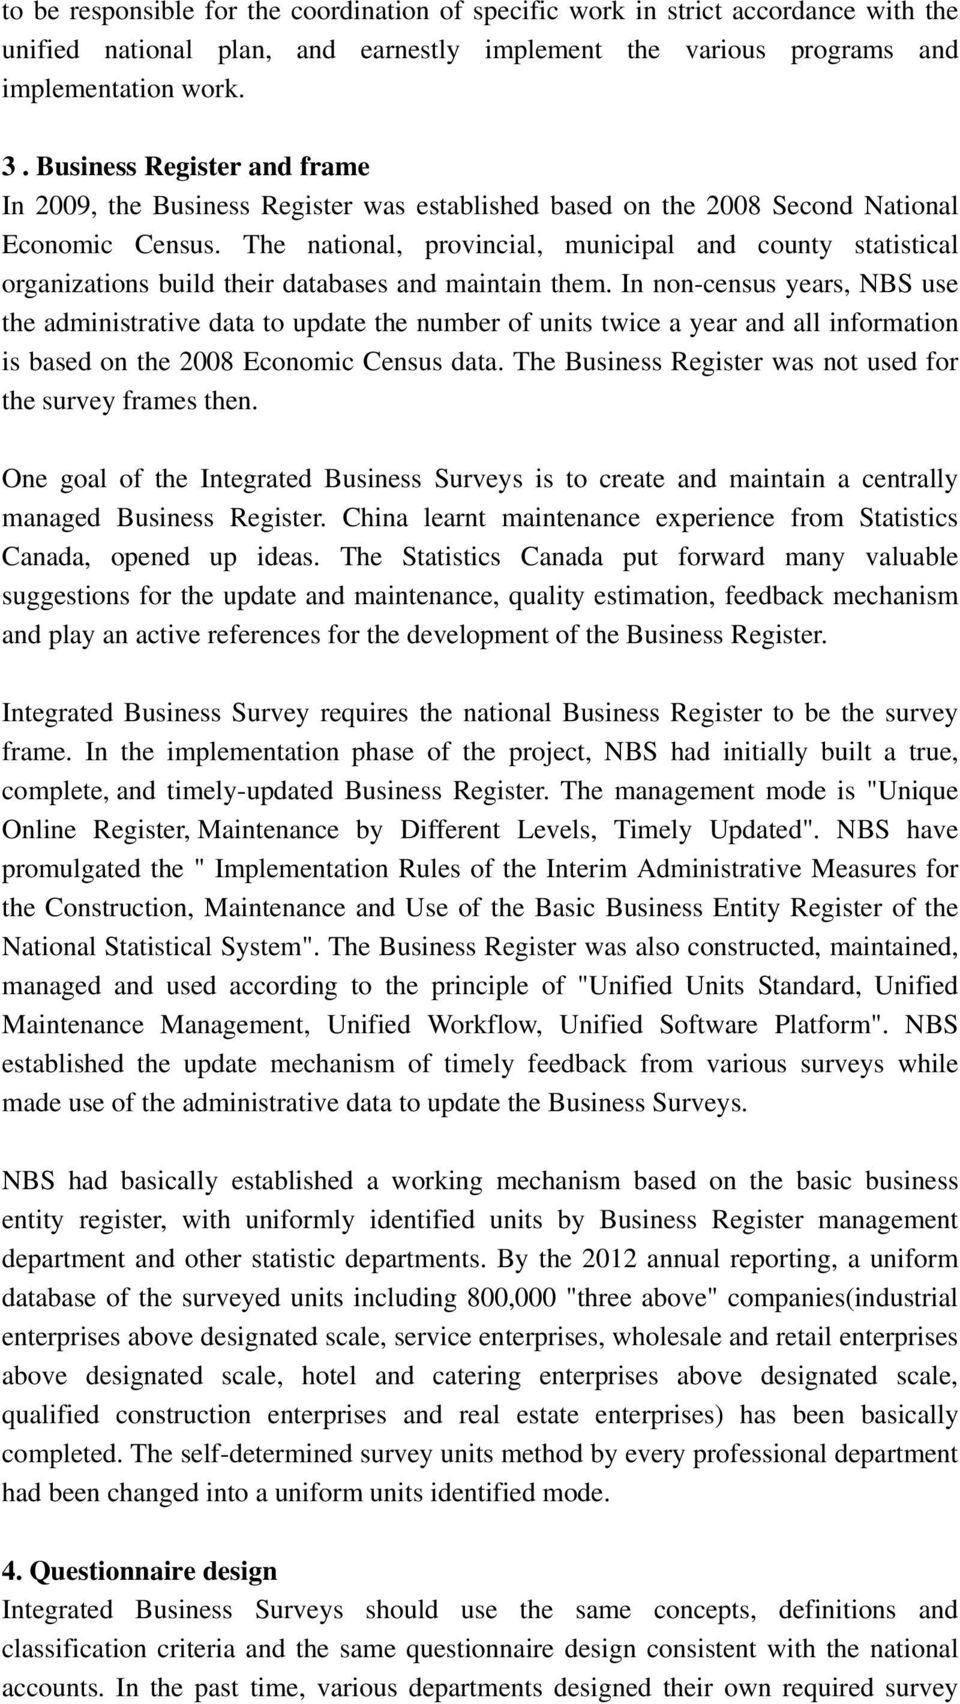 The national, provincial, municipal and county statistical organizations build their databases and maintain them.